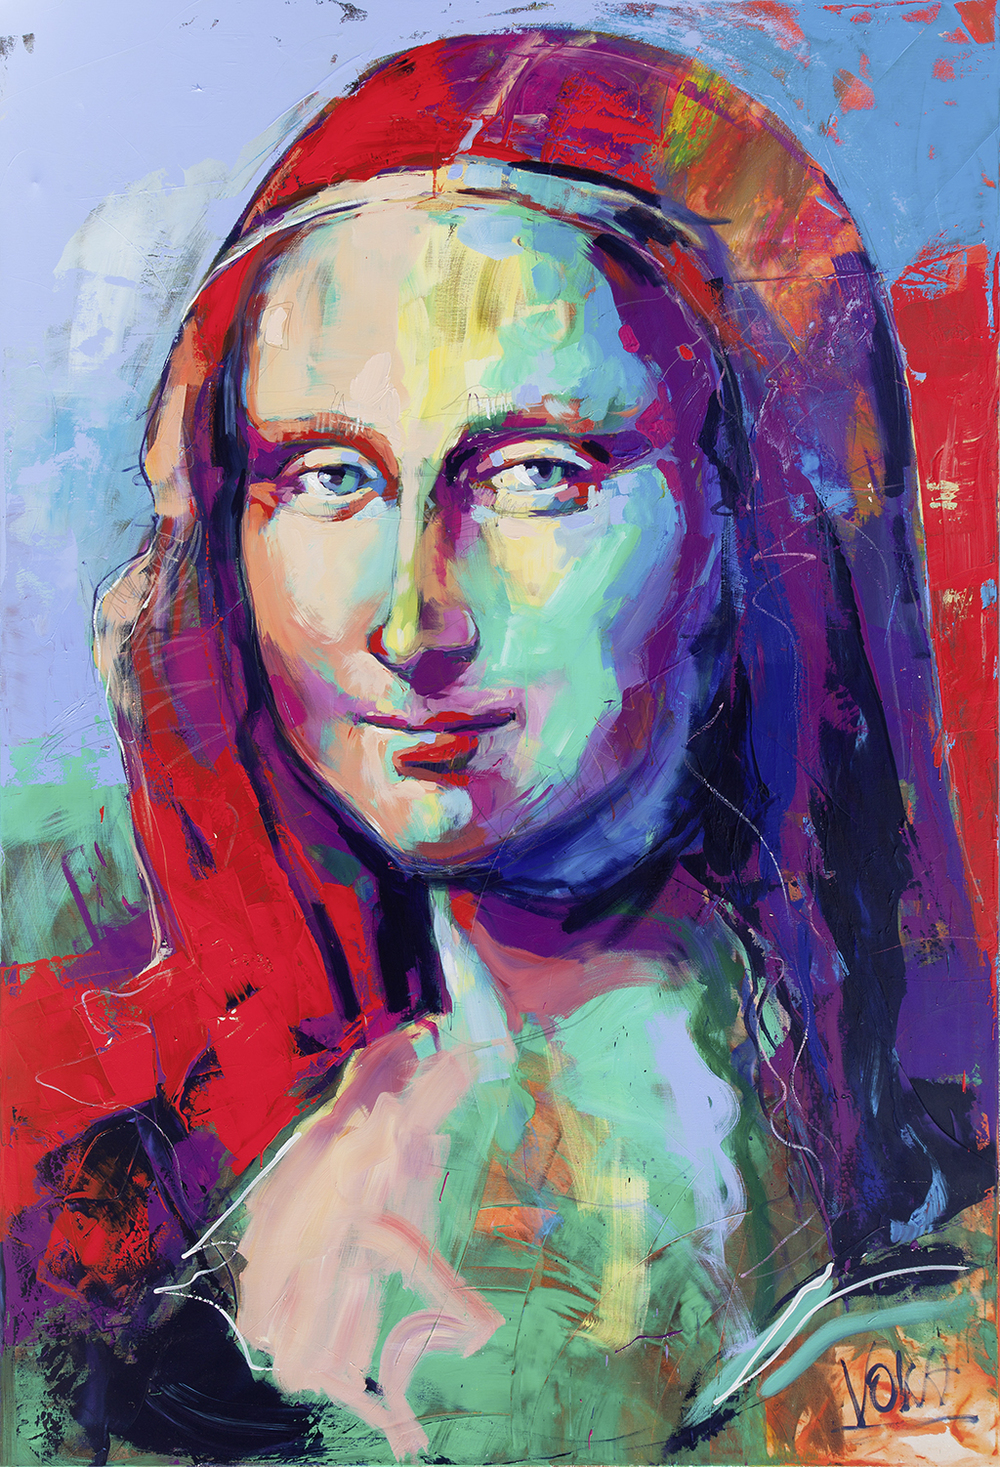 Mona Lisa, 280x190 cm/110,24x74,8 inch, acrylic on canvas.